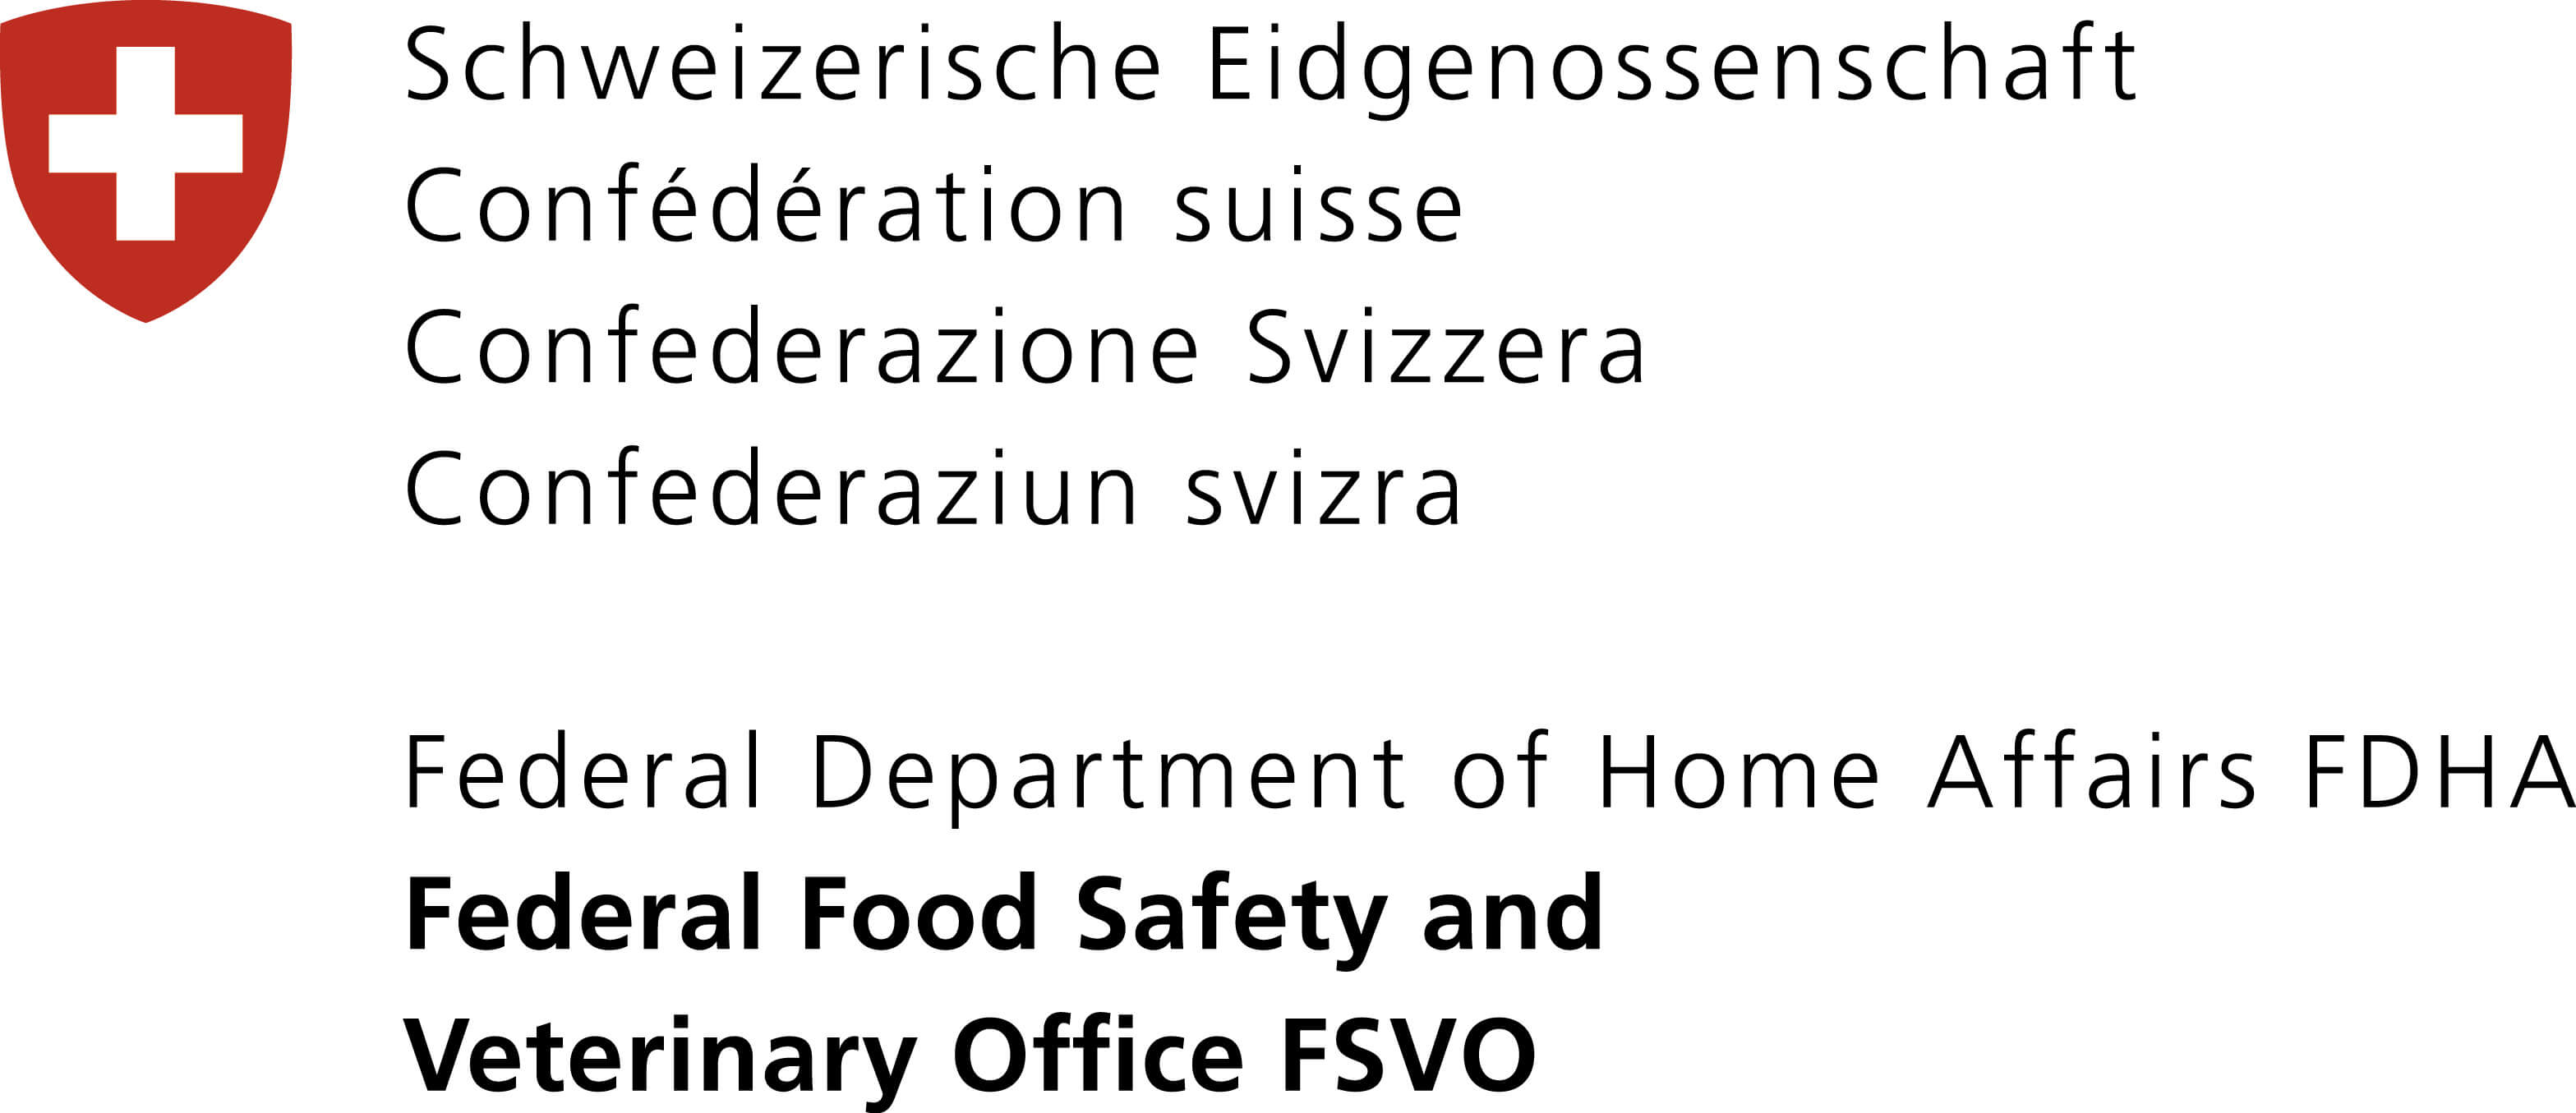 Federal Food Safety and Veterinary Office